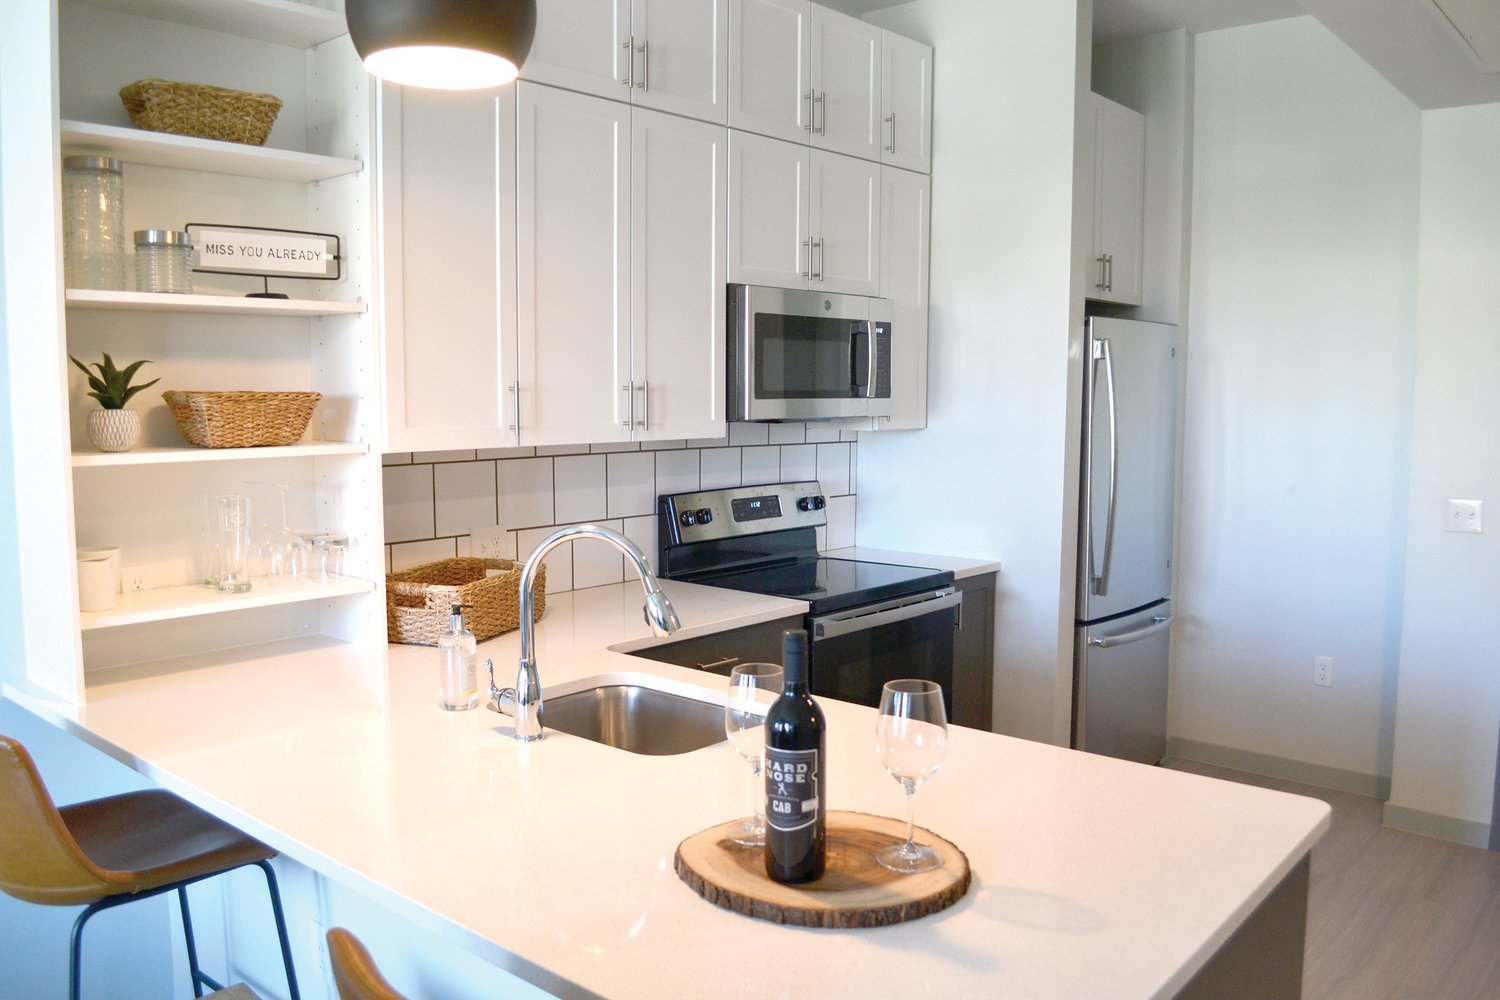 Kitchen view of a one bedroom apartment at BLOCK600